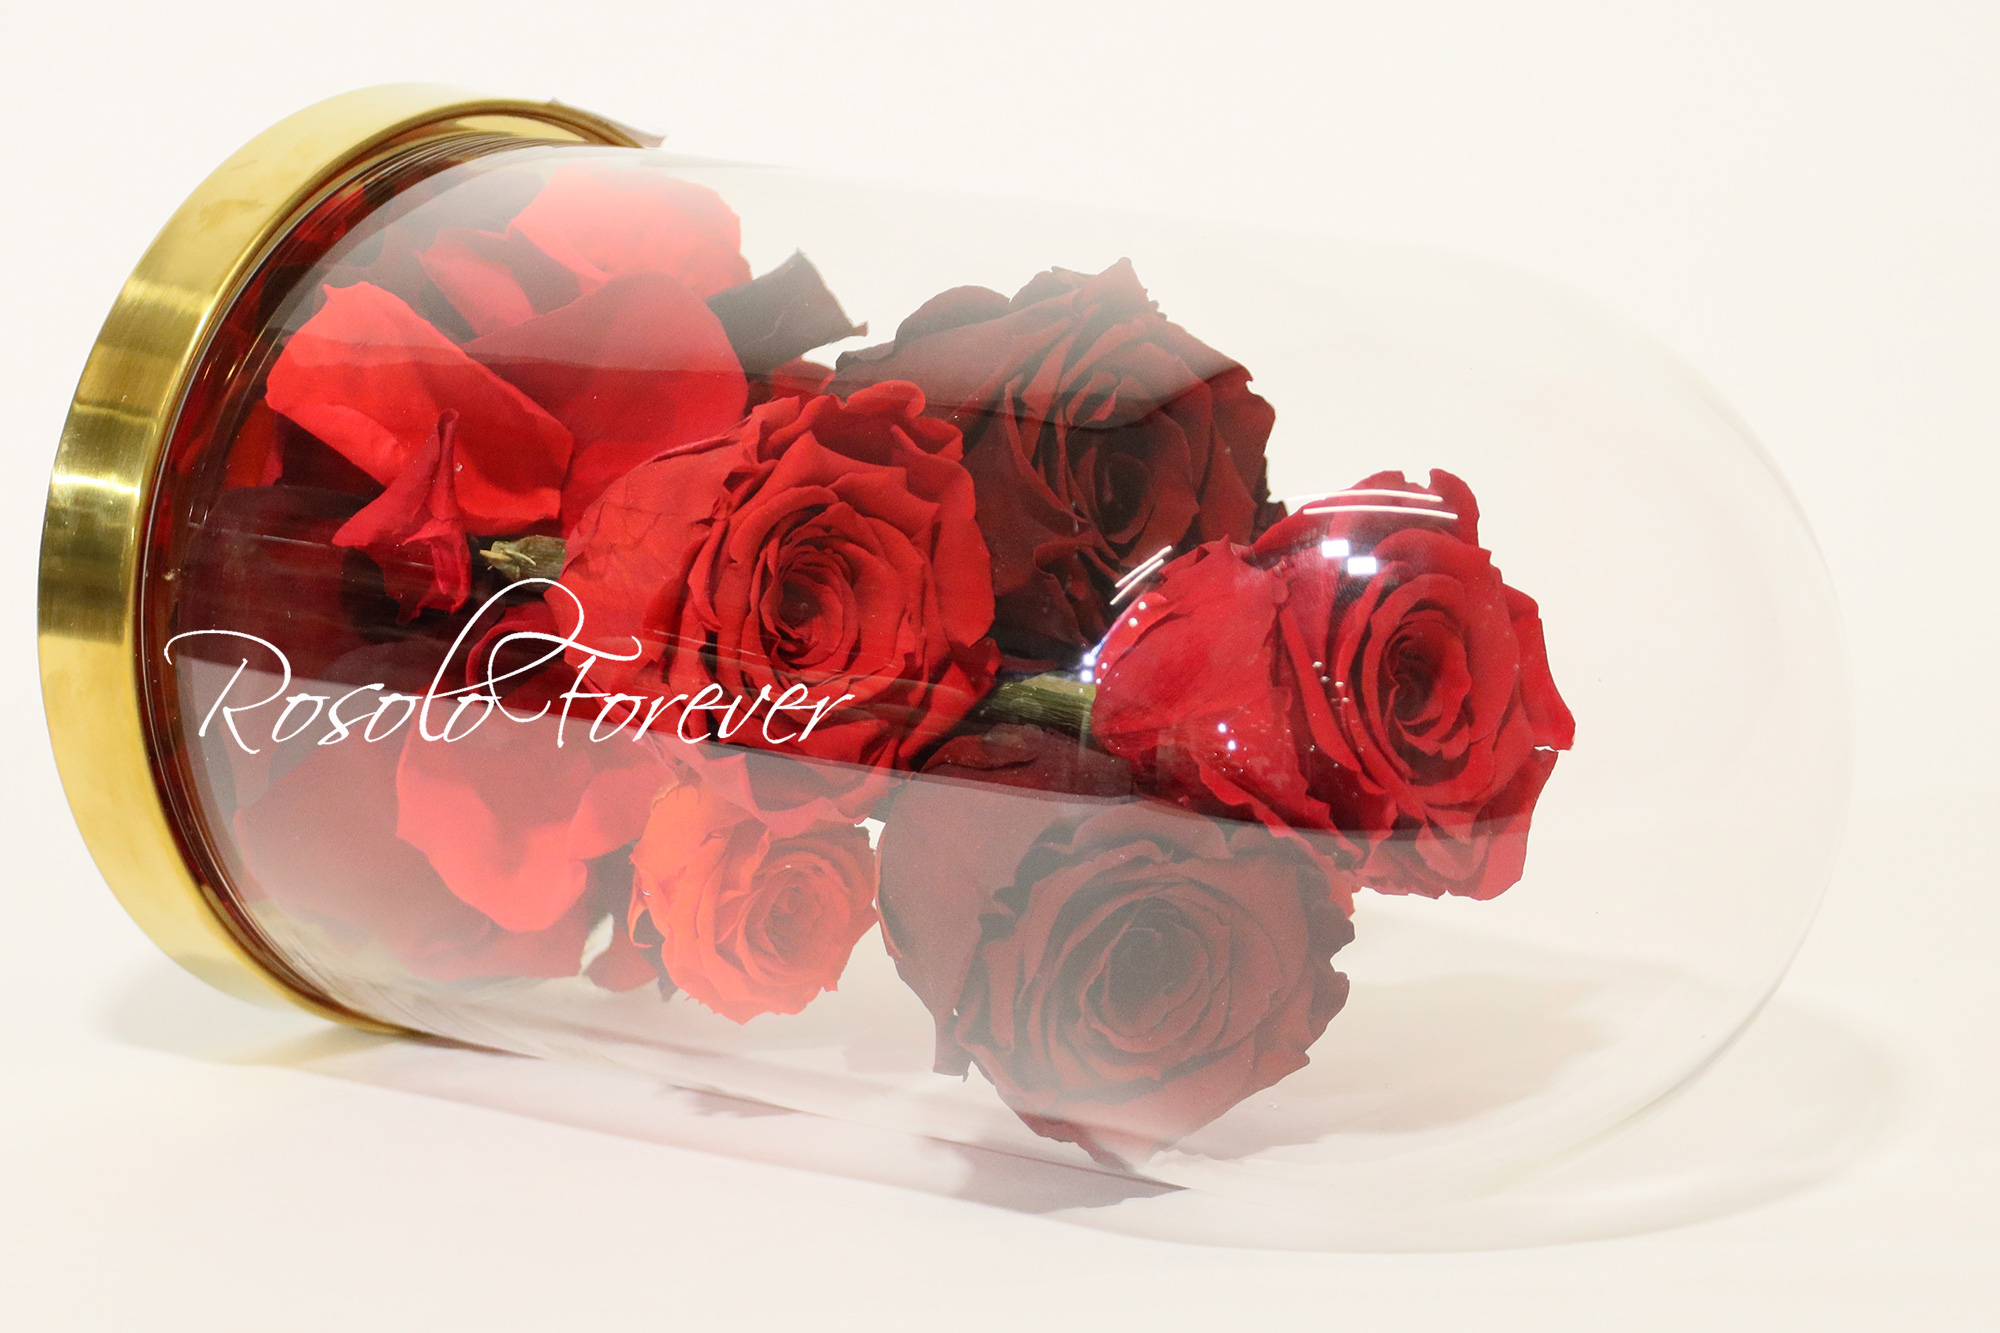 7 Roses sous cloche CHF 190.00